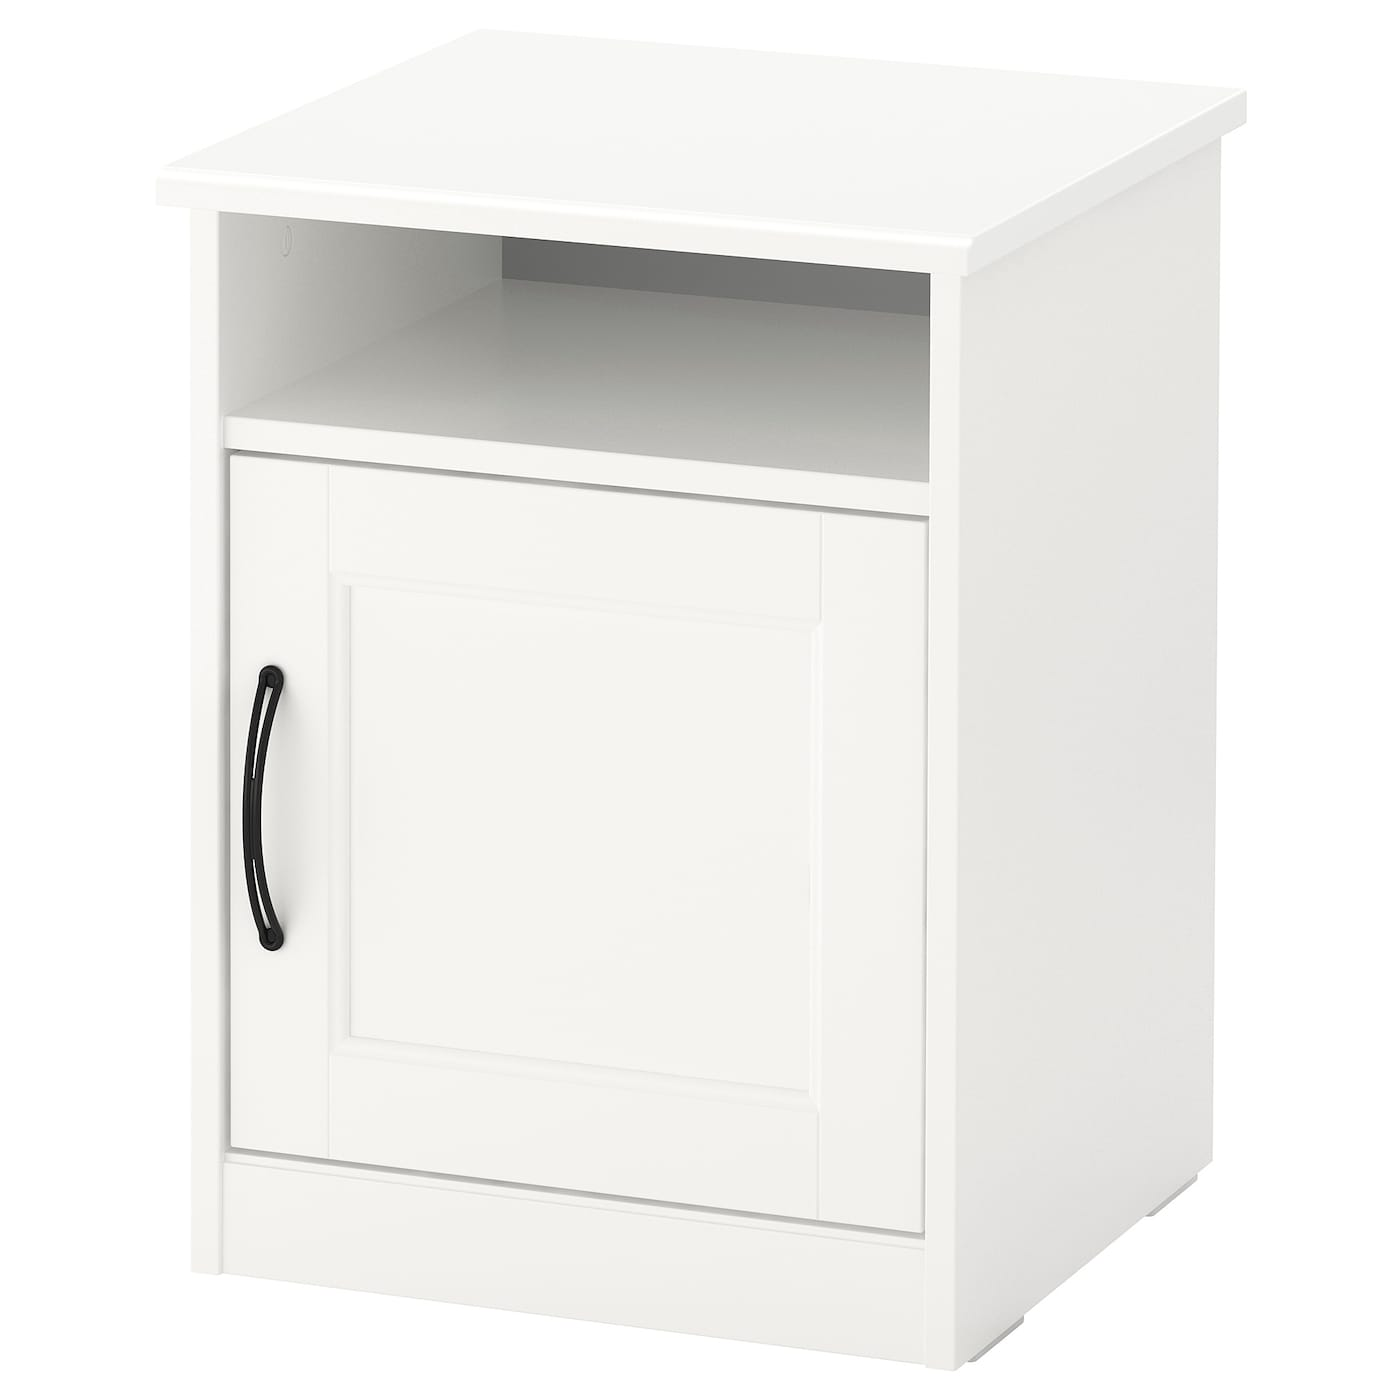 bedside lockers tables ikea ireland. Black Bedroom Furniture Sets. Home Design Ideas